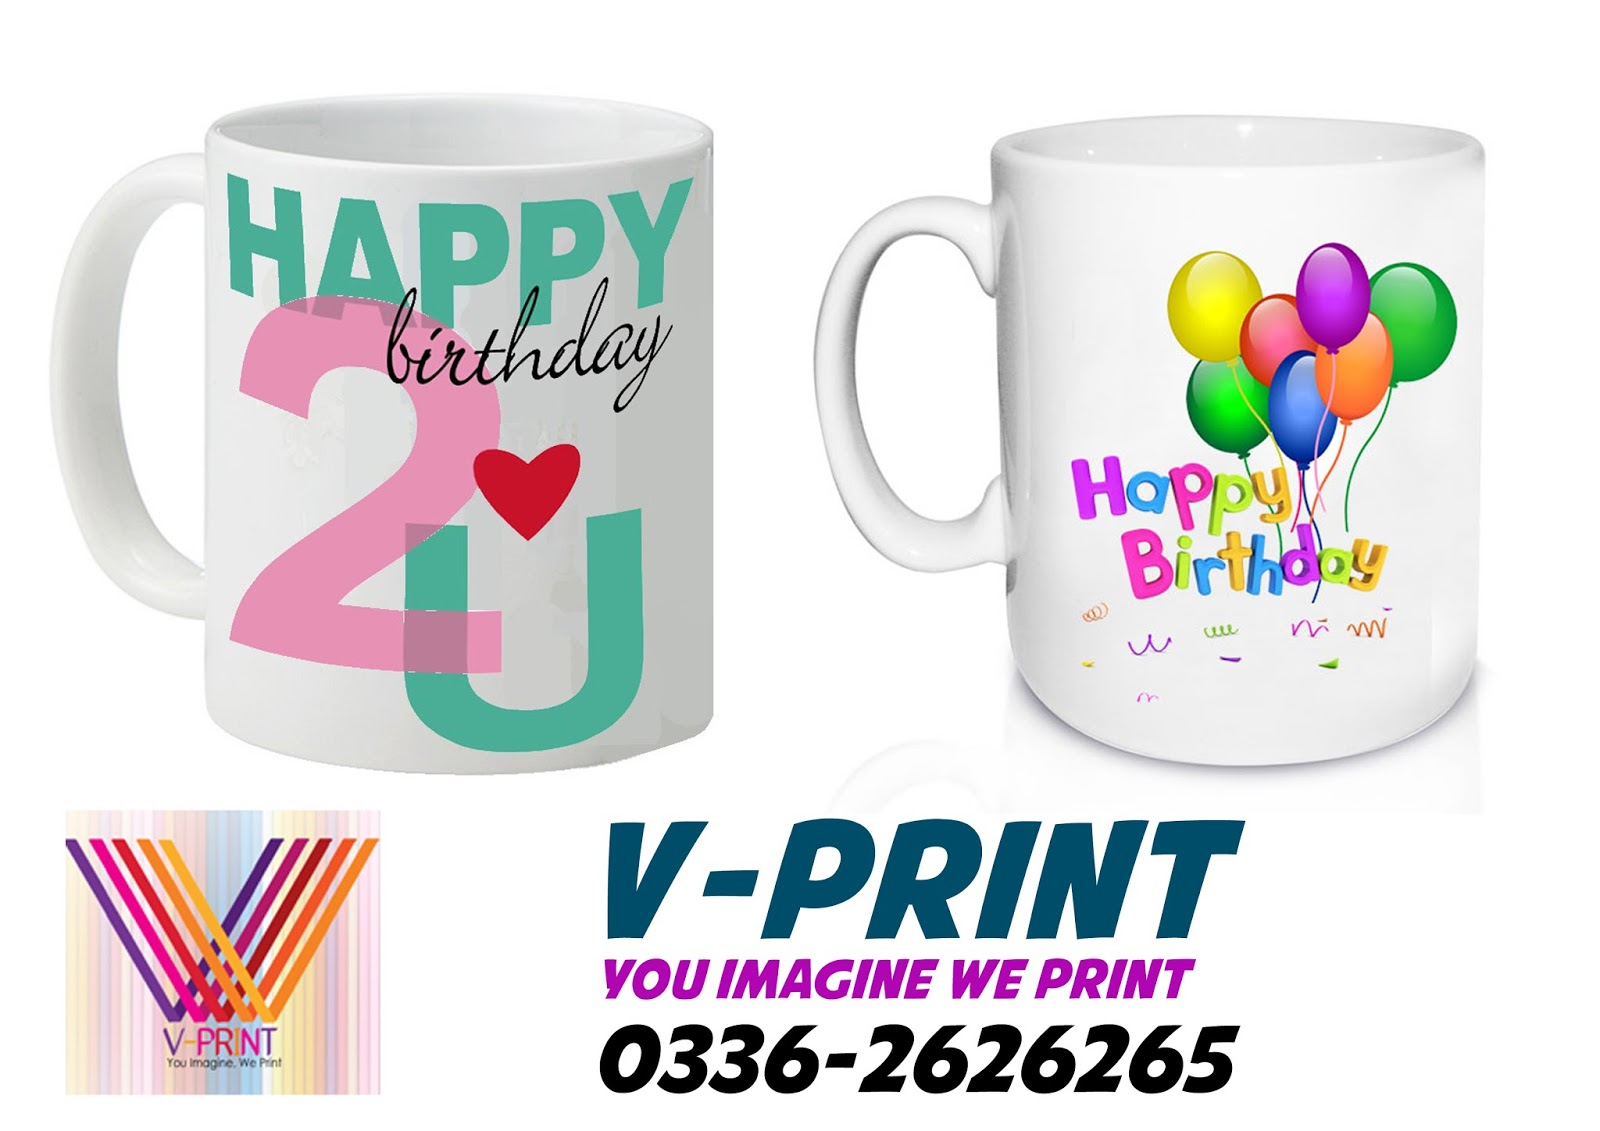 Personalized mugs price divisoria - V Print Is A Personalized Printing Shop We Print Birthday Mugs Love Mugs And Many More Mugs As Per Your Desire We Are Expert In Mug Printing